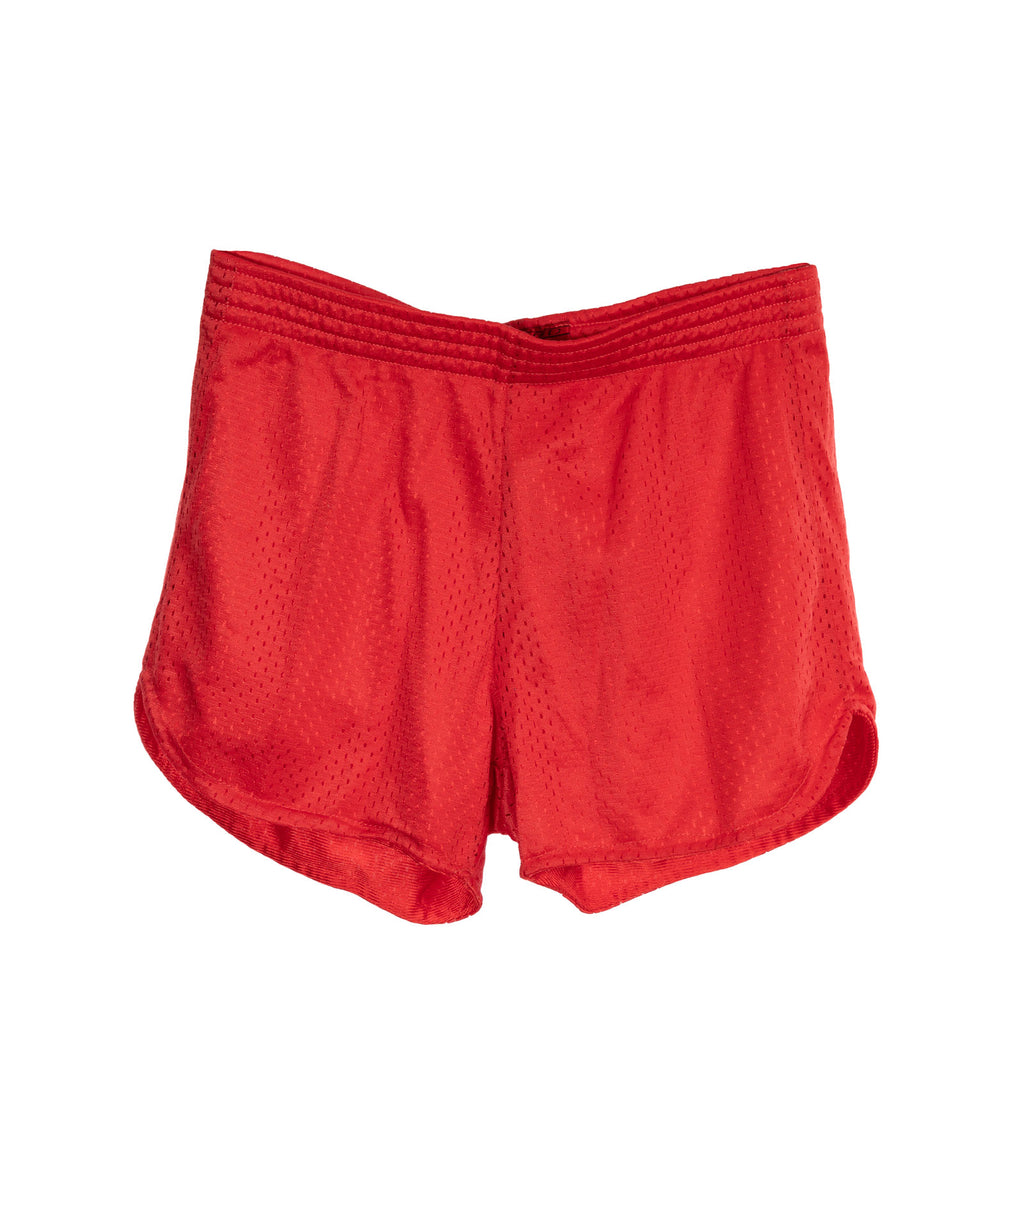 So Nikki Girls Red Mesh Shorts